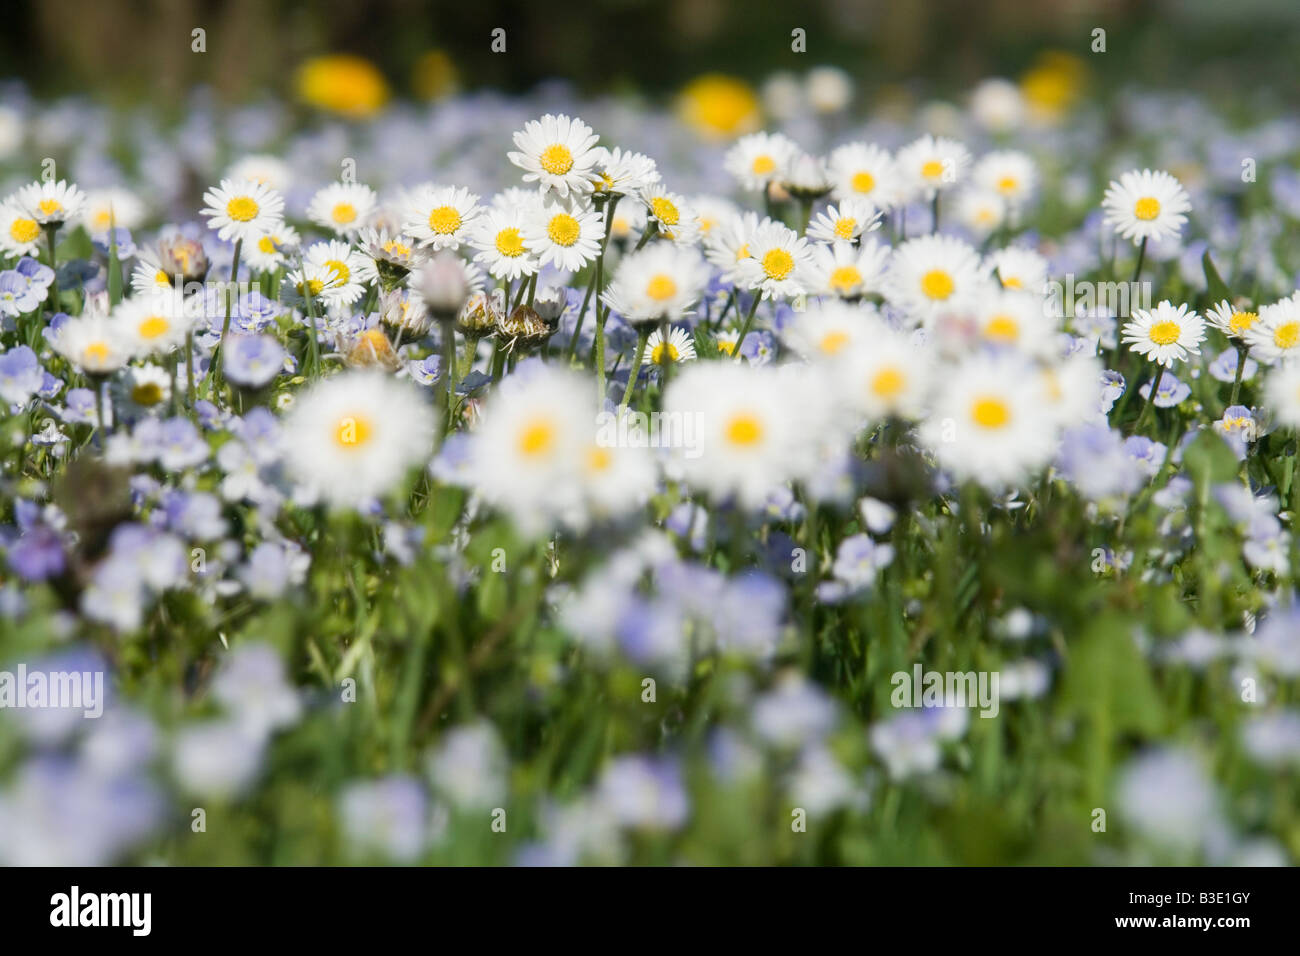 Germany, Bavaria, Wild daisies (Asteraceae), close-up - Stock Image